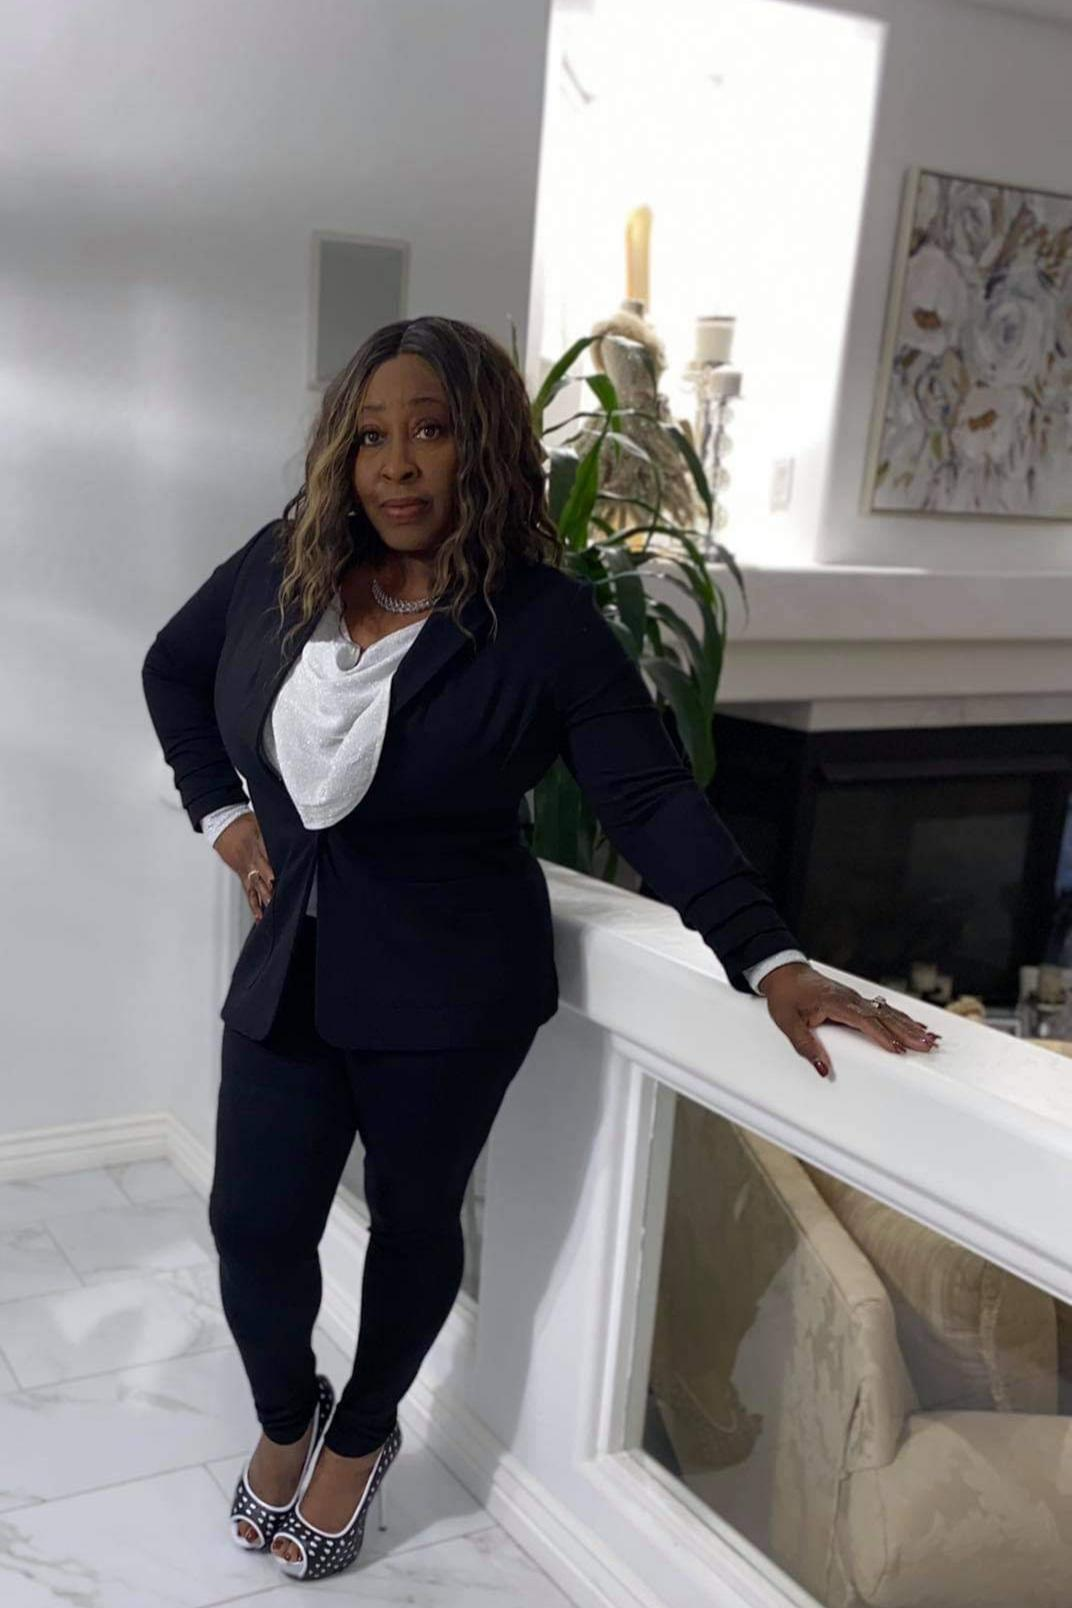 Stephanie L. Bailey Honored as a Woman of the Month for July 2021 by P.O.W.E.R. - Professional Organization of Women of Excellence Recognized